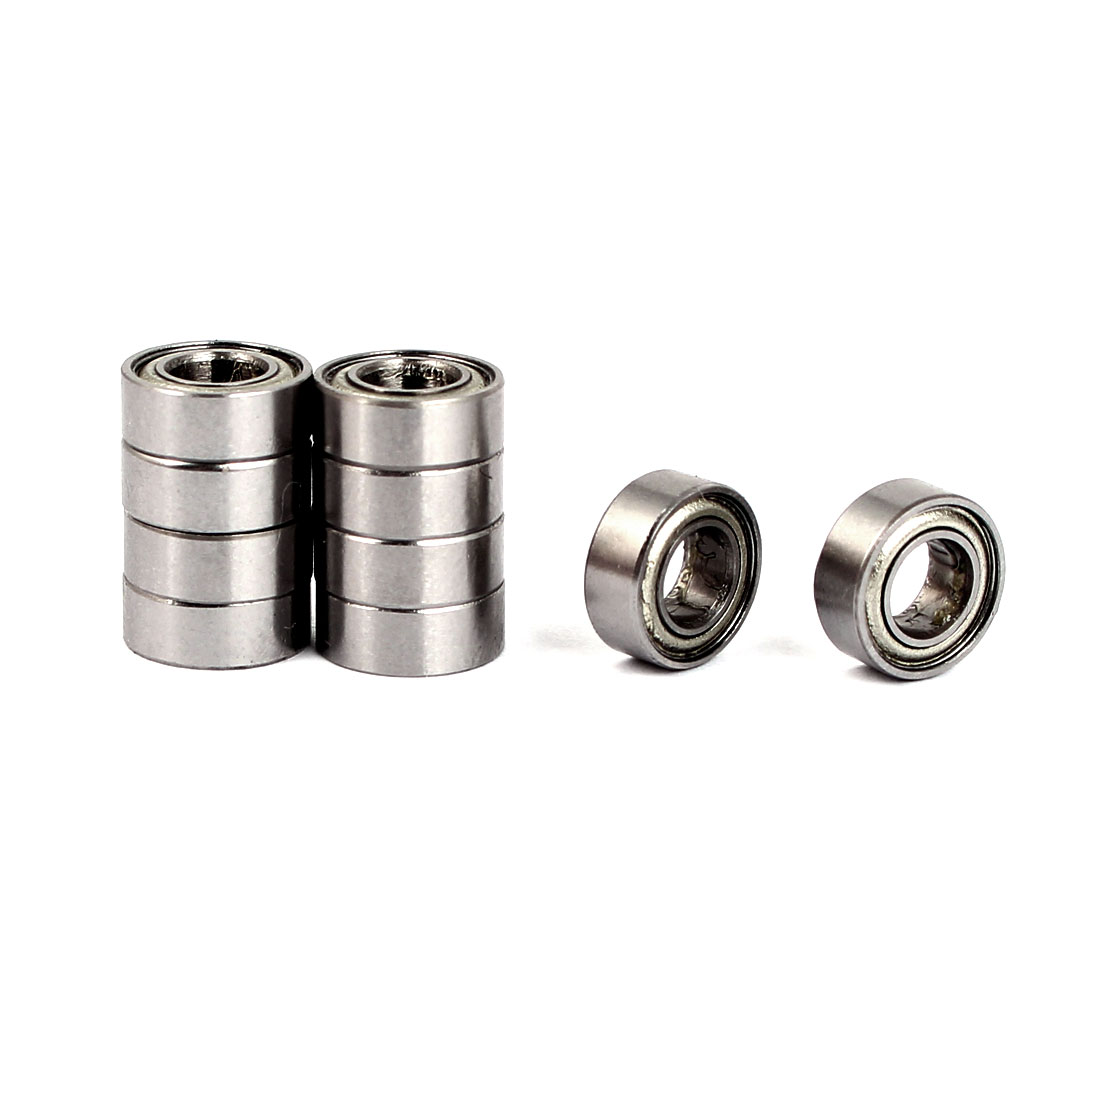 ZZMR84 Deep Groove Ball Bearing 8mm OD 4mm Bore Diameter 10pcs